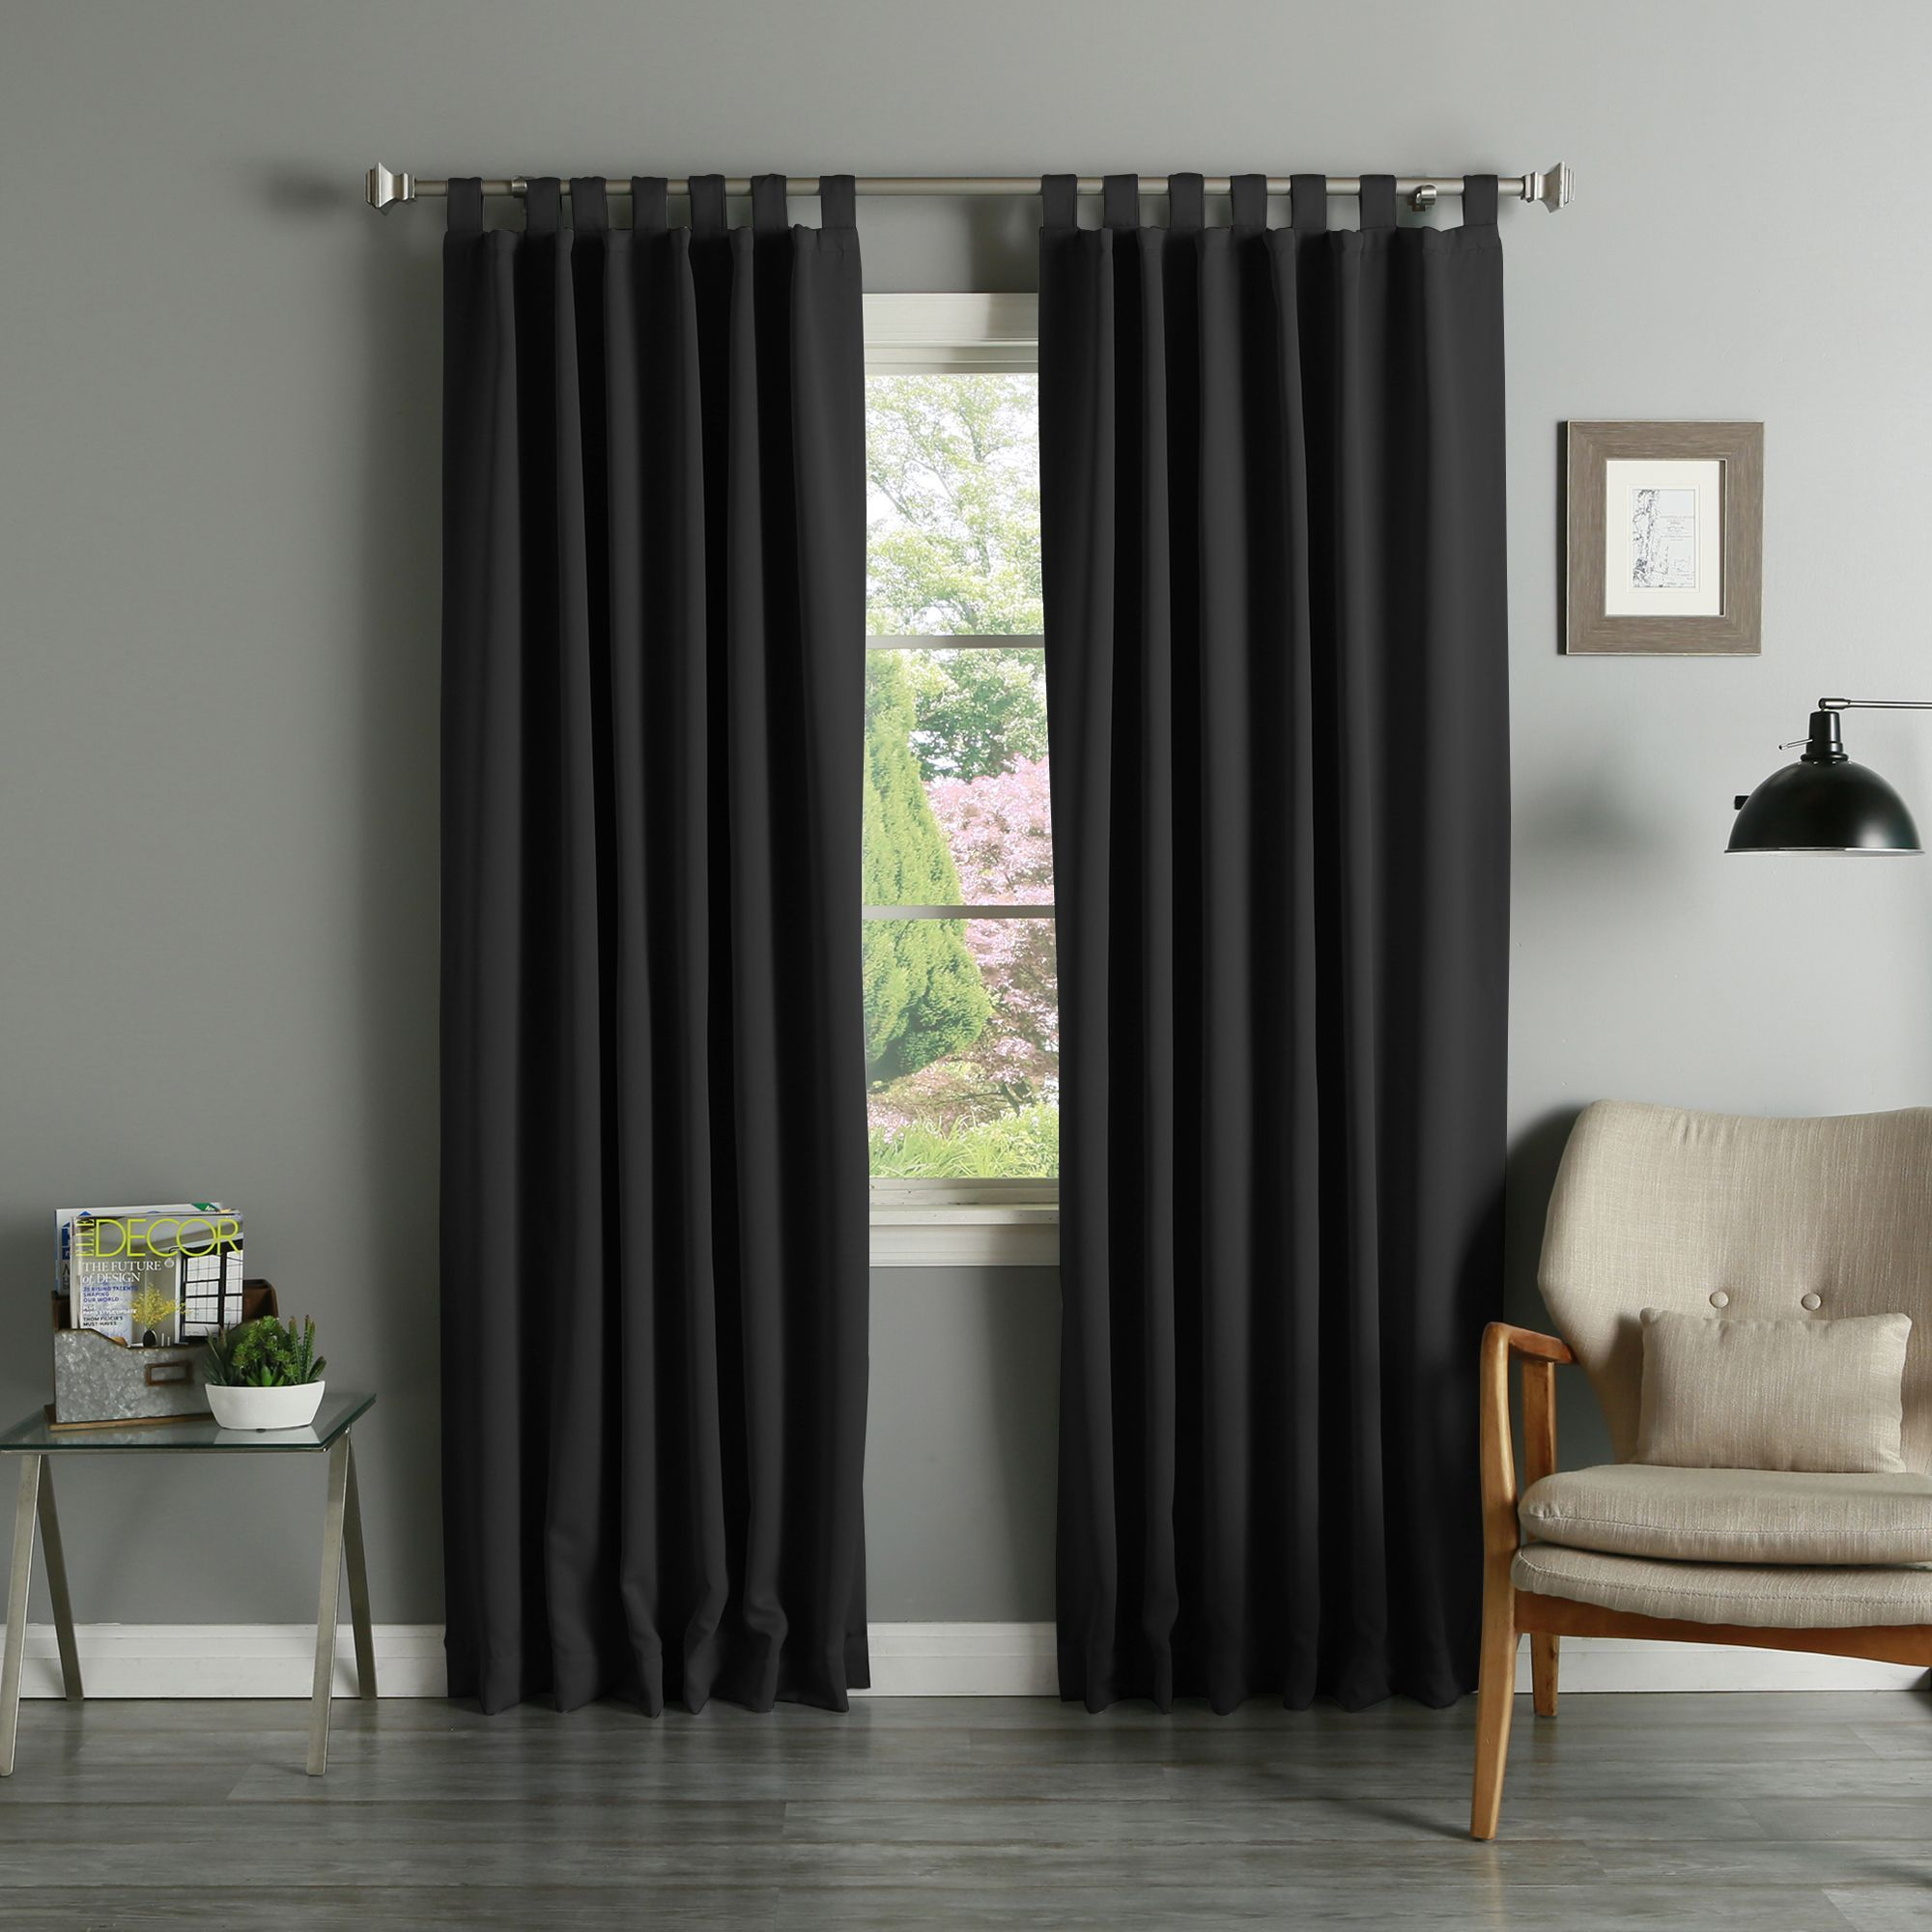 Aurora Home Tab Top Thermal Insulated 95 Inch Blackout Pertaining To Solid Thermal Insulated Blackout Curtain Panel Pairs (View 14 of 30)